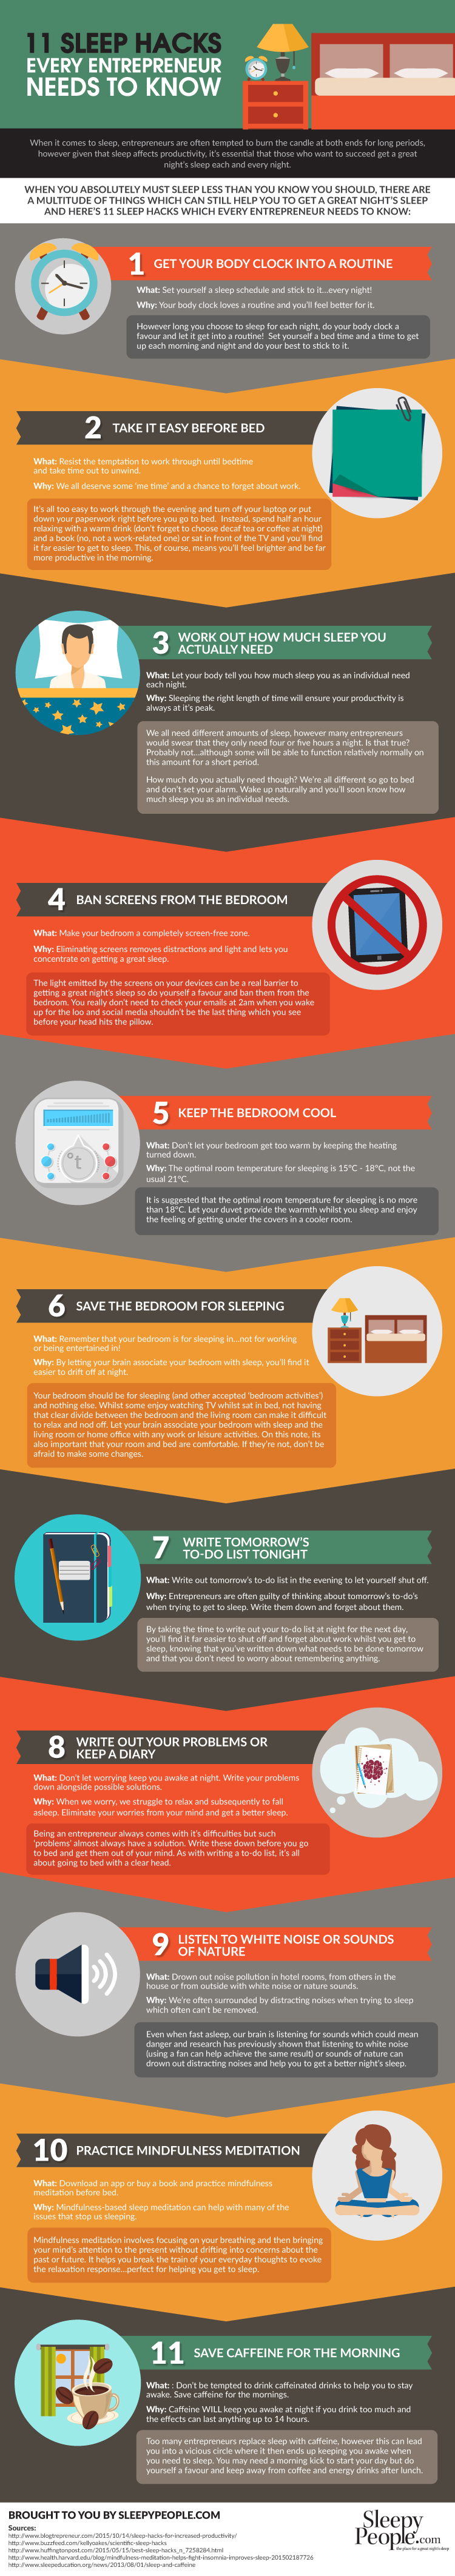 sleep-hacks-for-it-professionals